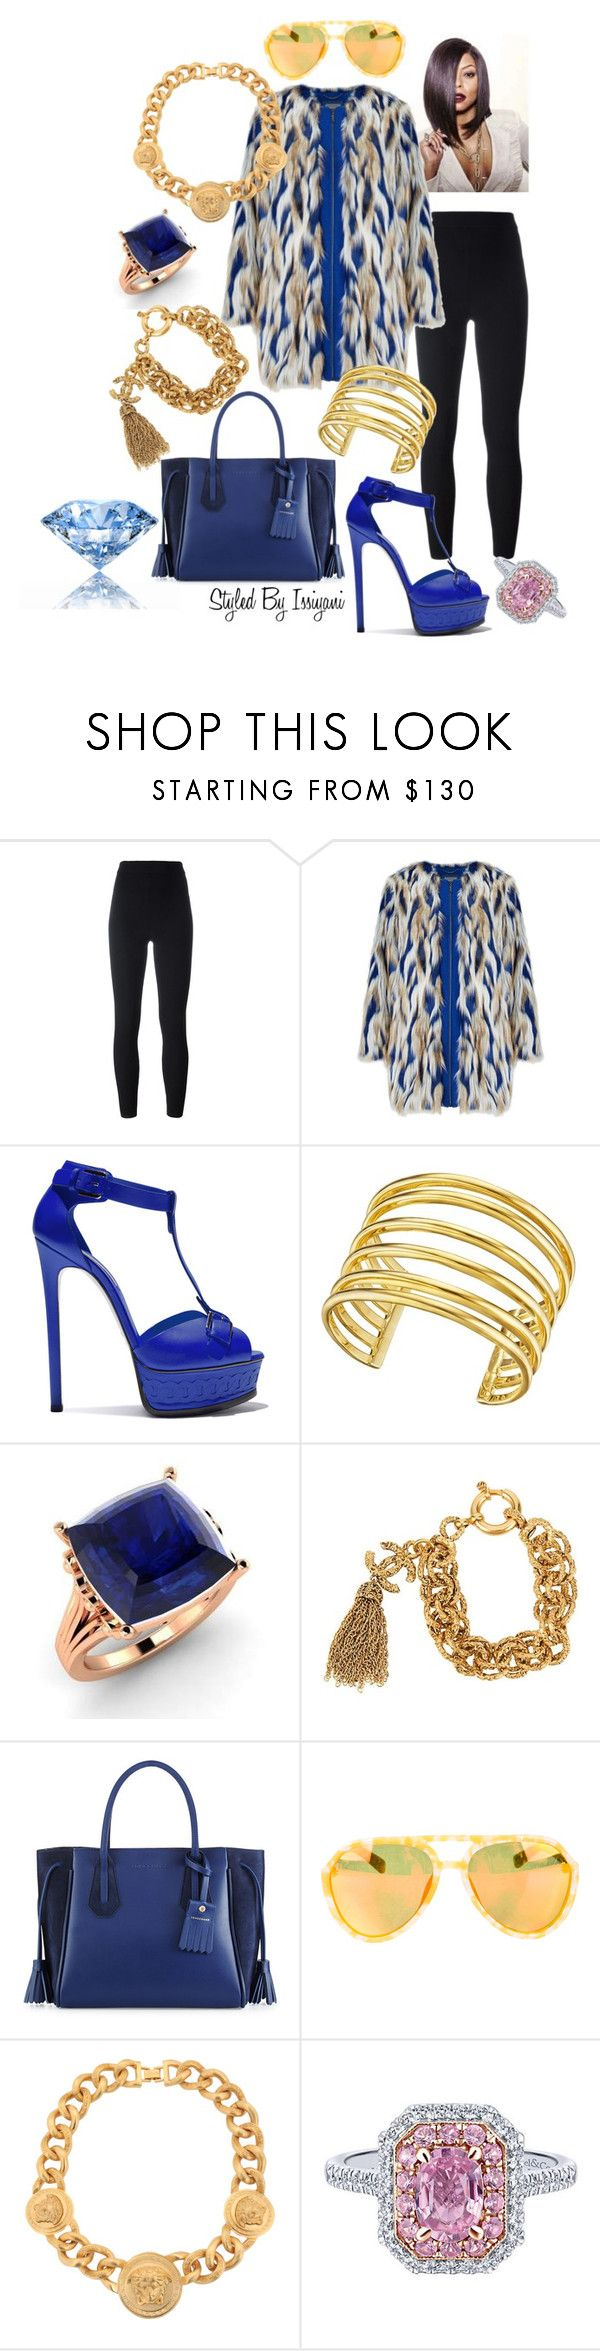 """""""Cookie is Queen"""" by styledbyissiyani ❤ liked on Polyvore featuring Yeezy by Kanye West, Casadei, Lynn Ban, Diamondere, Chanel, Longchamp, Linda Farrow and Versace"""